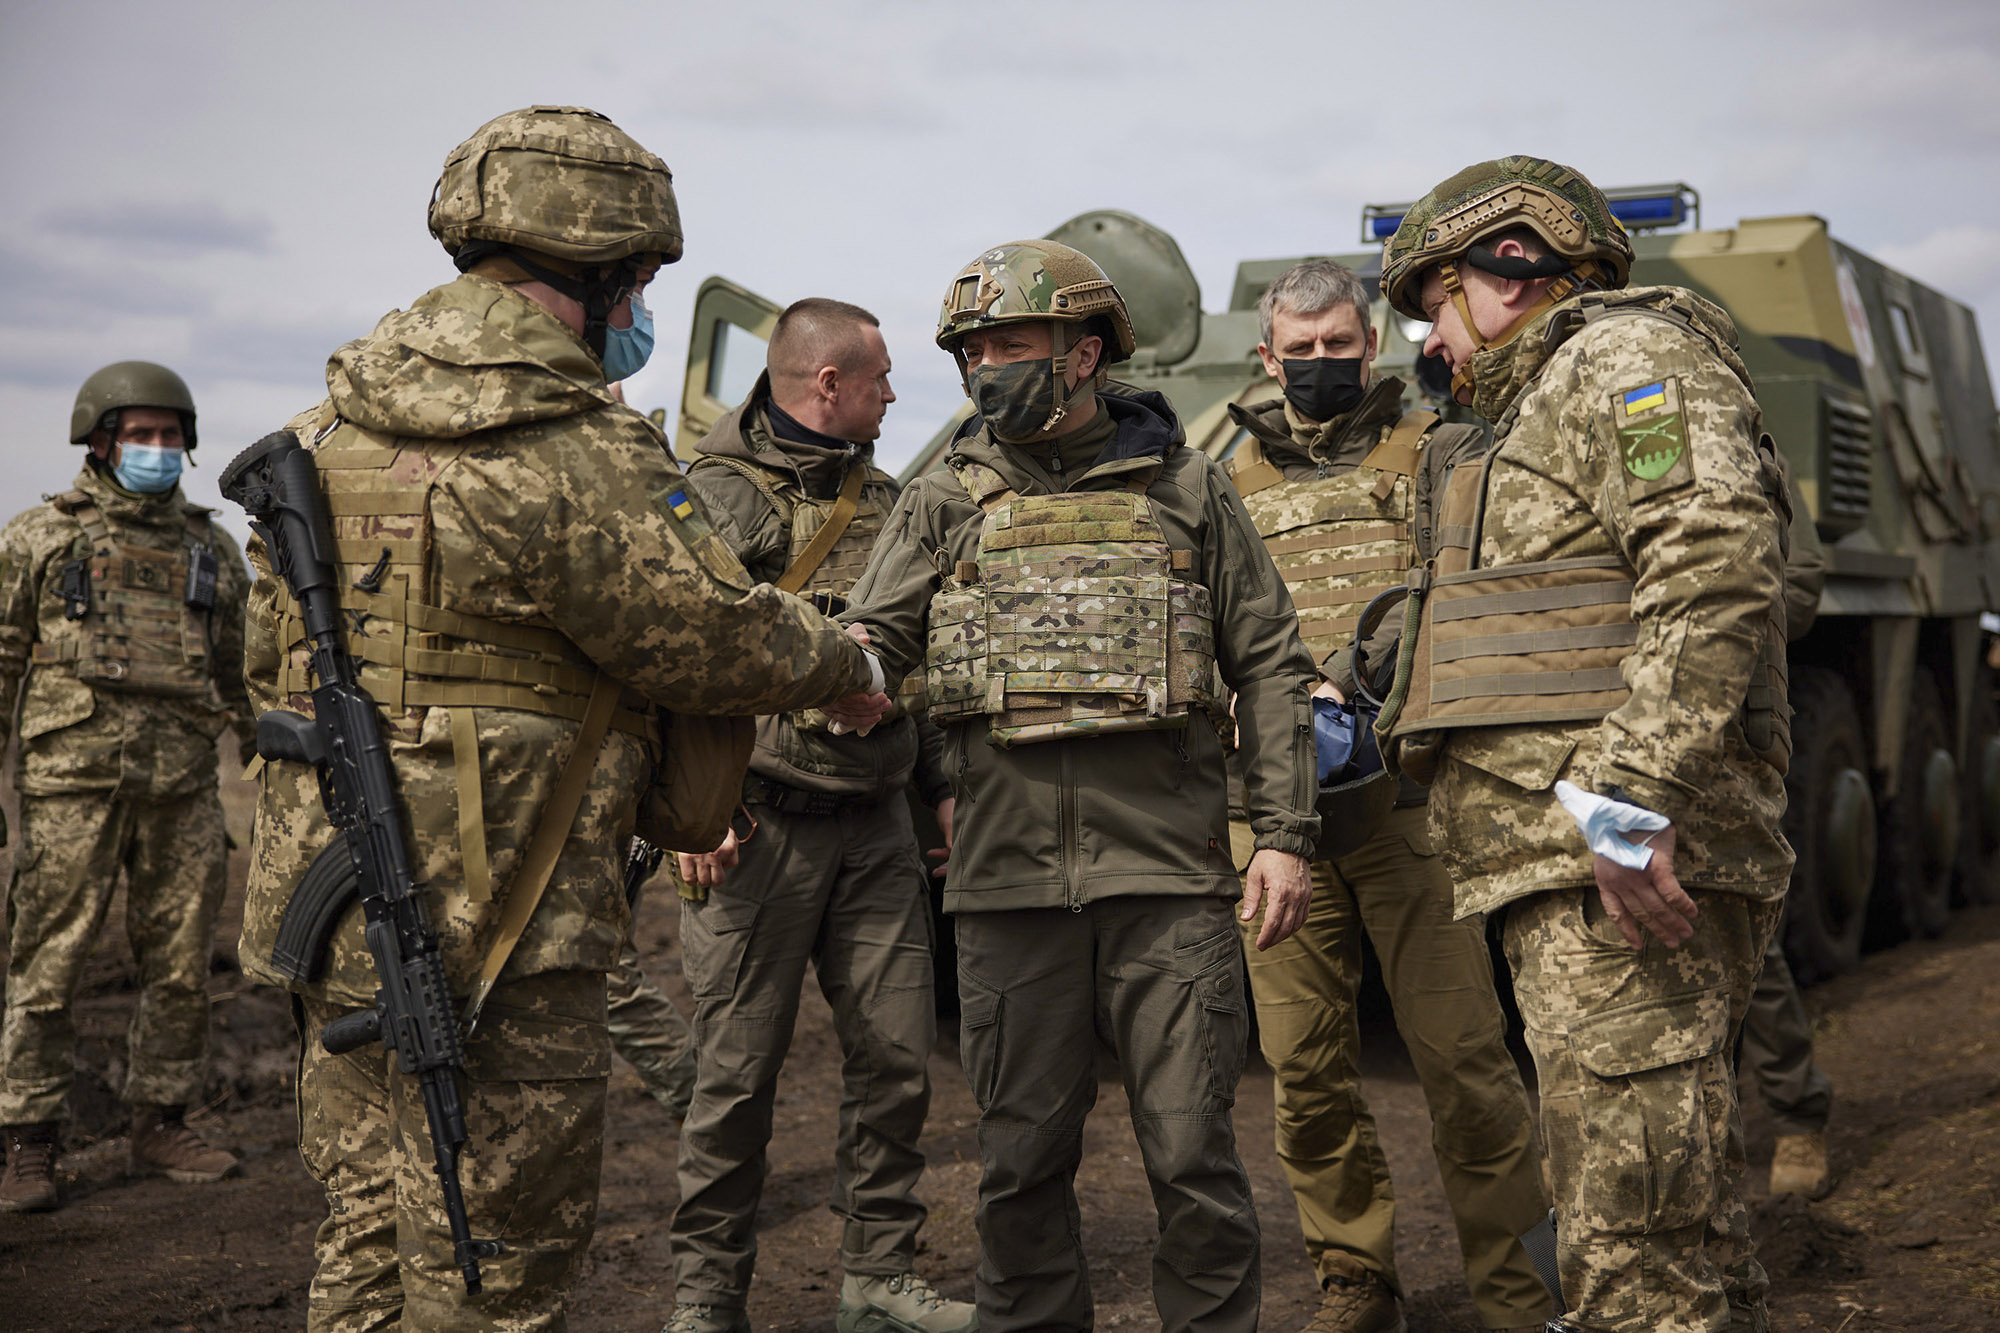 Ukraine Tells Russia To Pull Back As U.S. Warns Of Cost